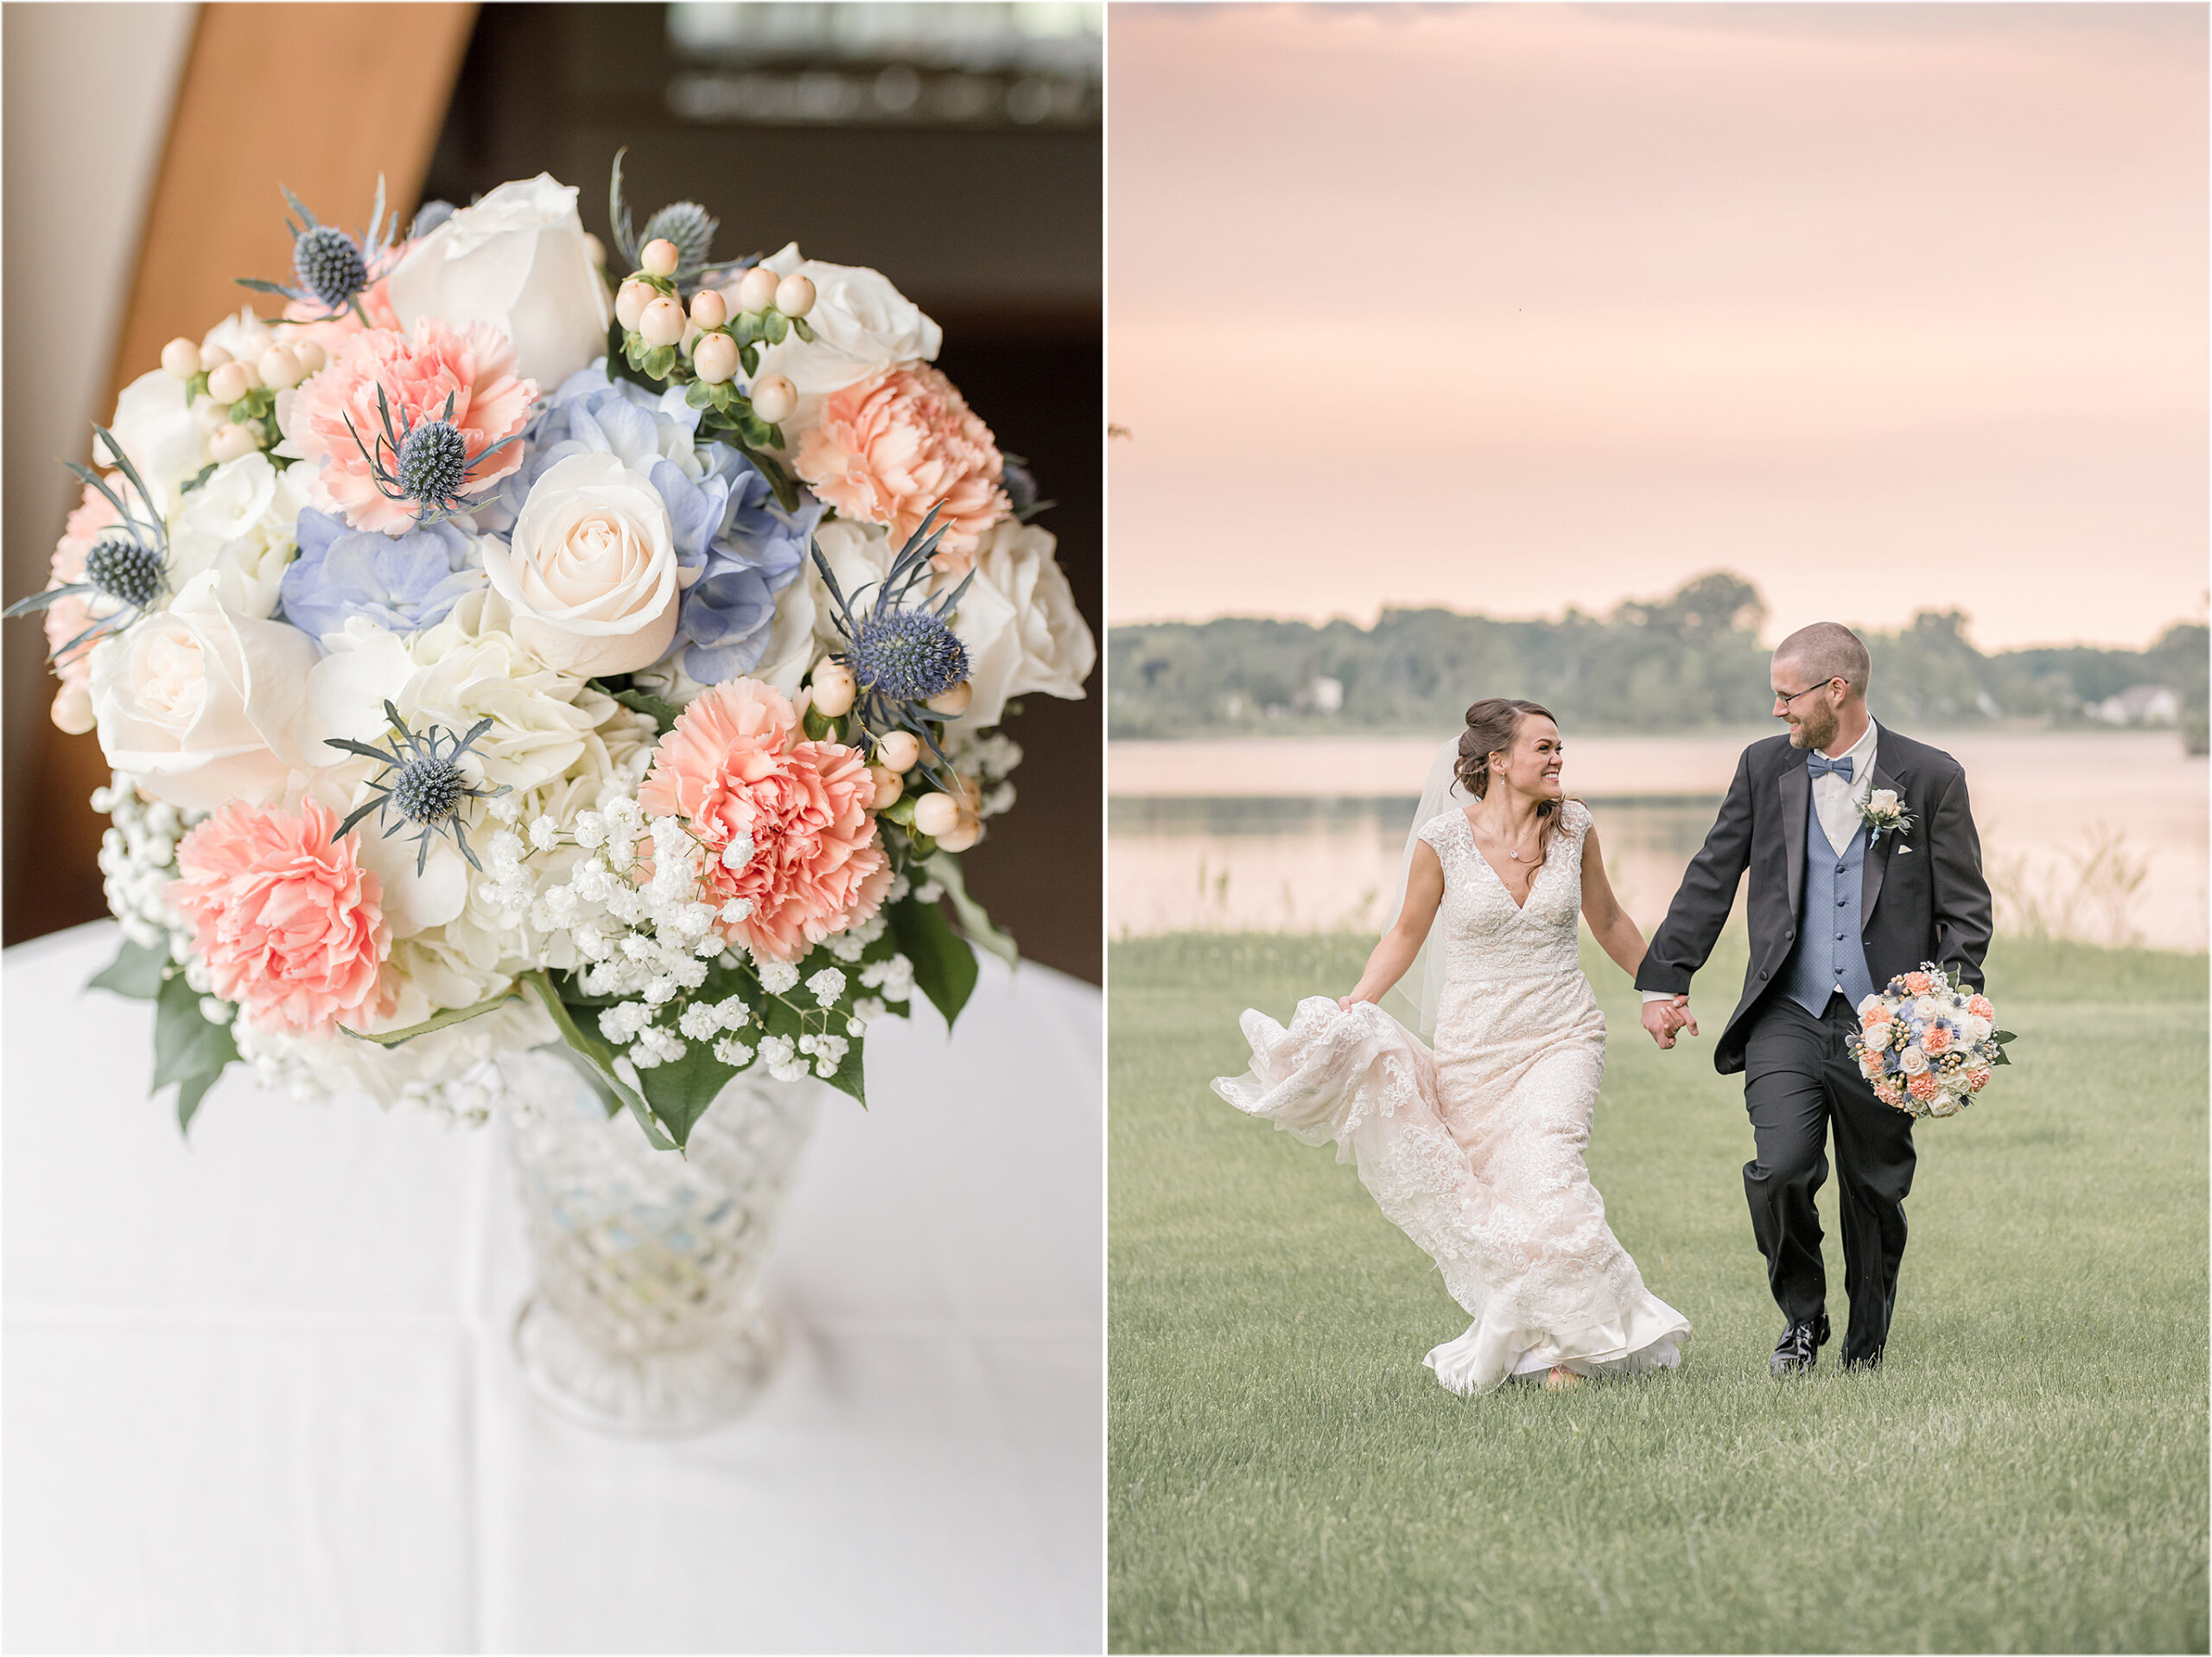 Lindsay-Adkins-Photography-Top10BridalBouquets2019-9